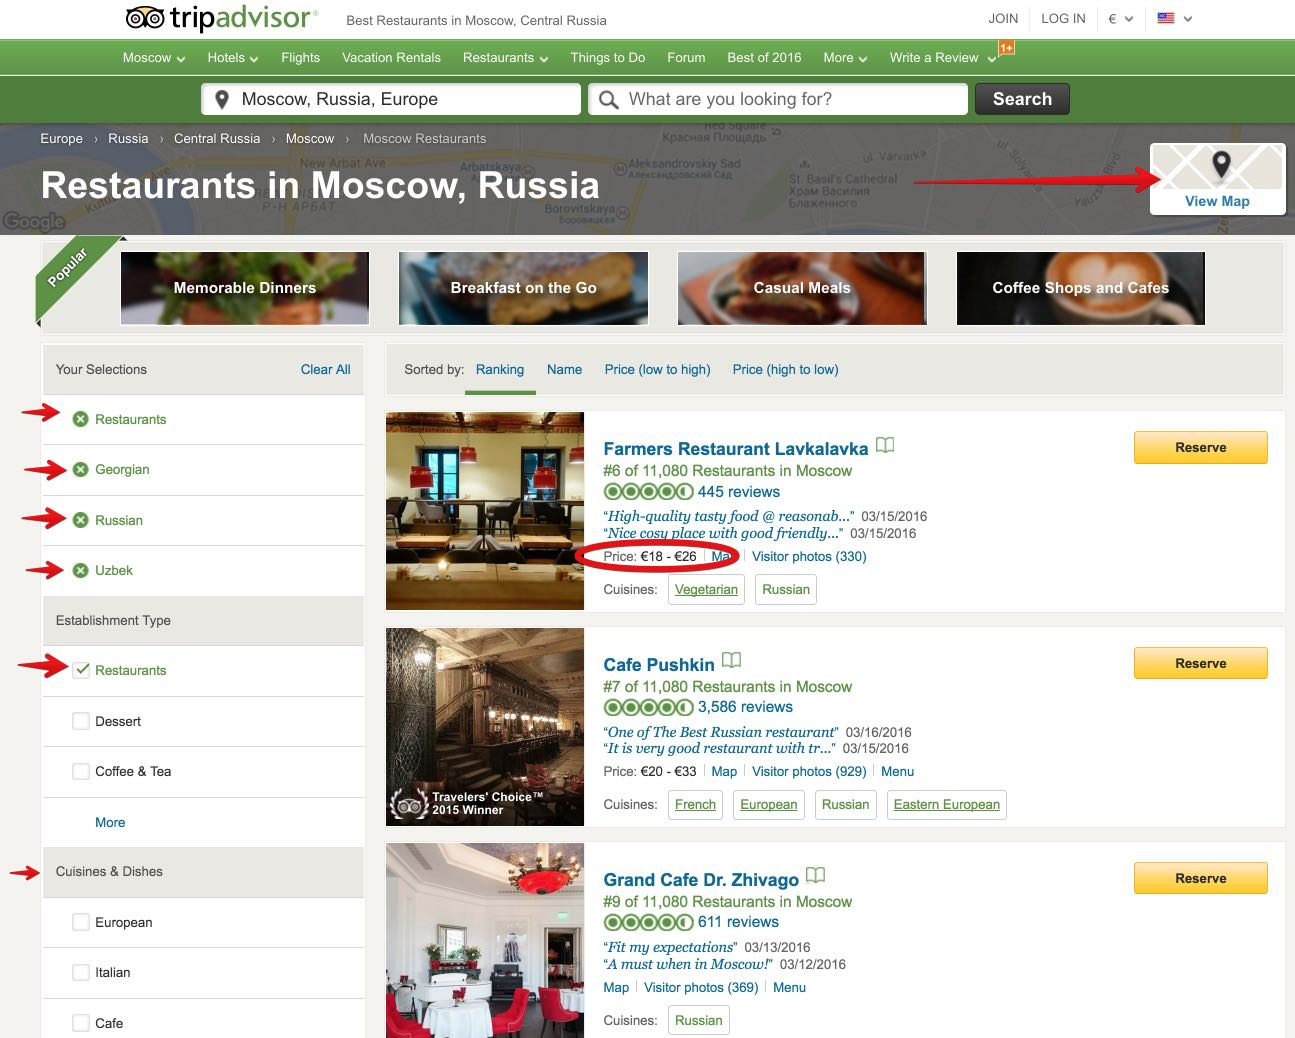 Teh best restaurants in Moscow - TripAdvisor